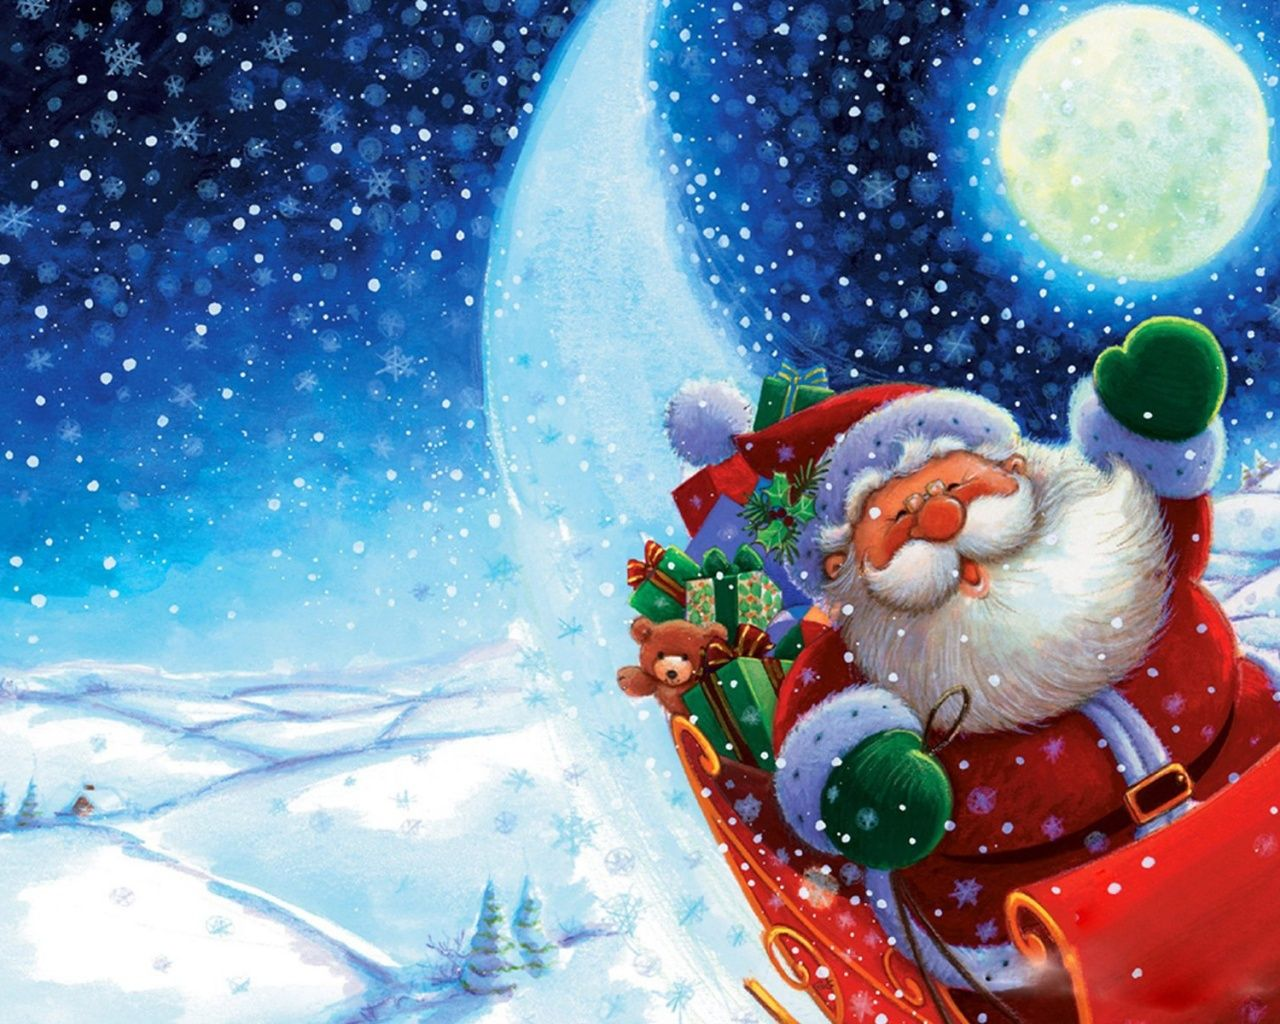 Uncategorized Christmas Santa Wallpaper when we still believed in santa the tooth fairy and easter claus christmas new year wishes wallpapers normal